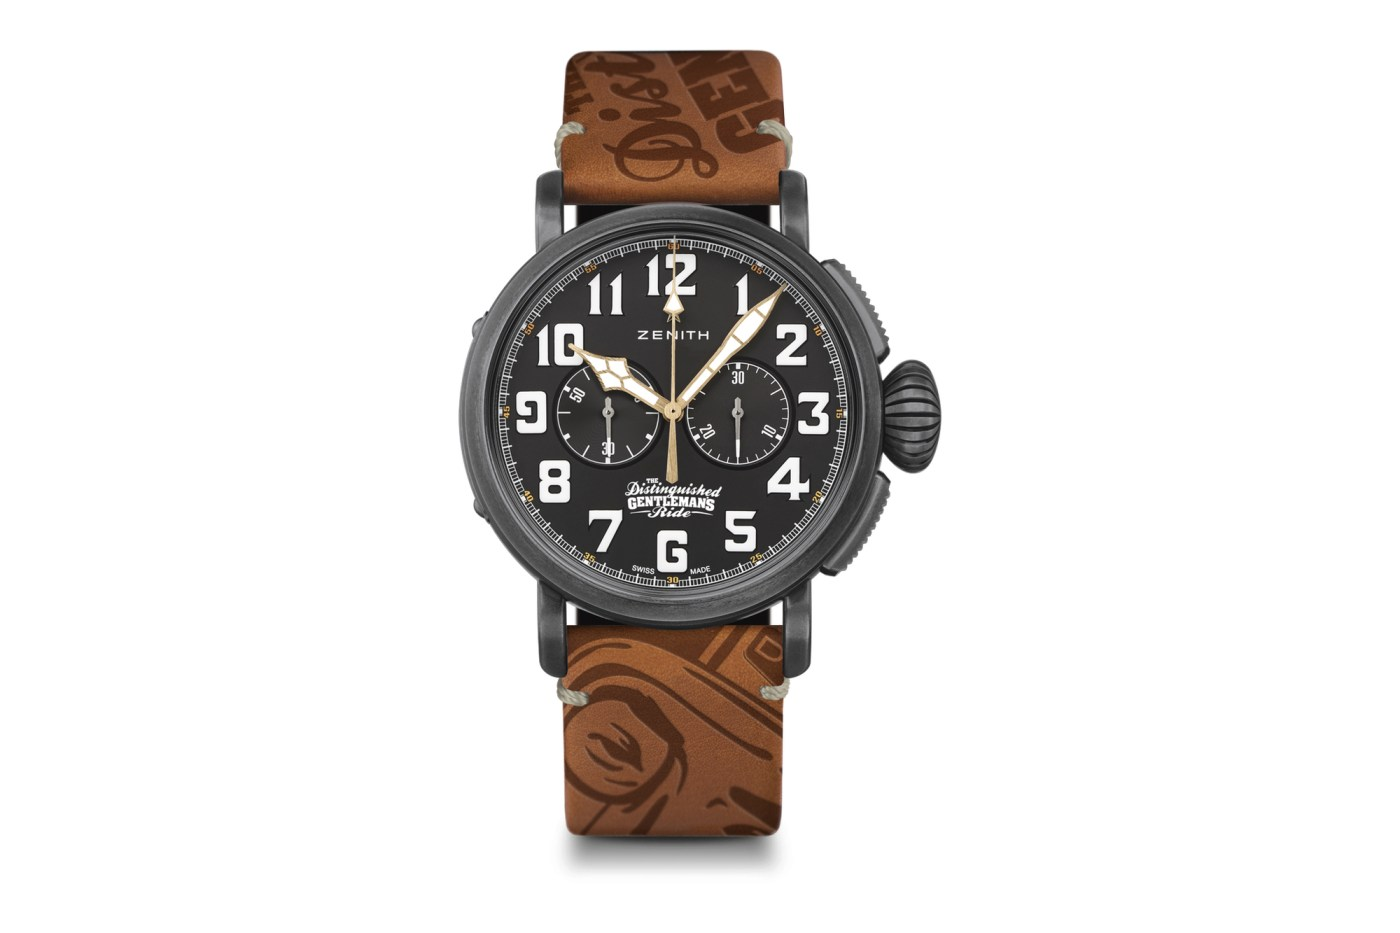 Zenith Pilot Type 20 Chronograph Ton Up Distinguished Gentleman's Ride Edition